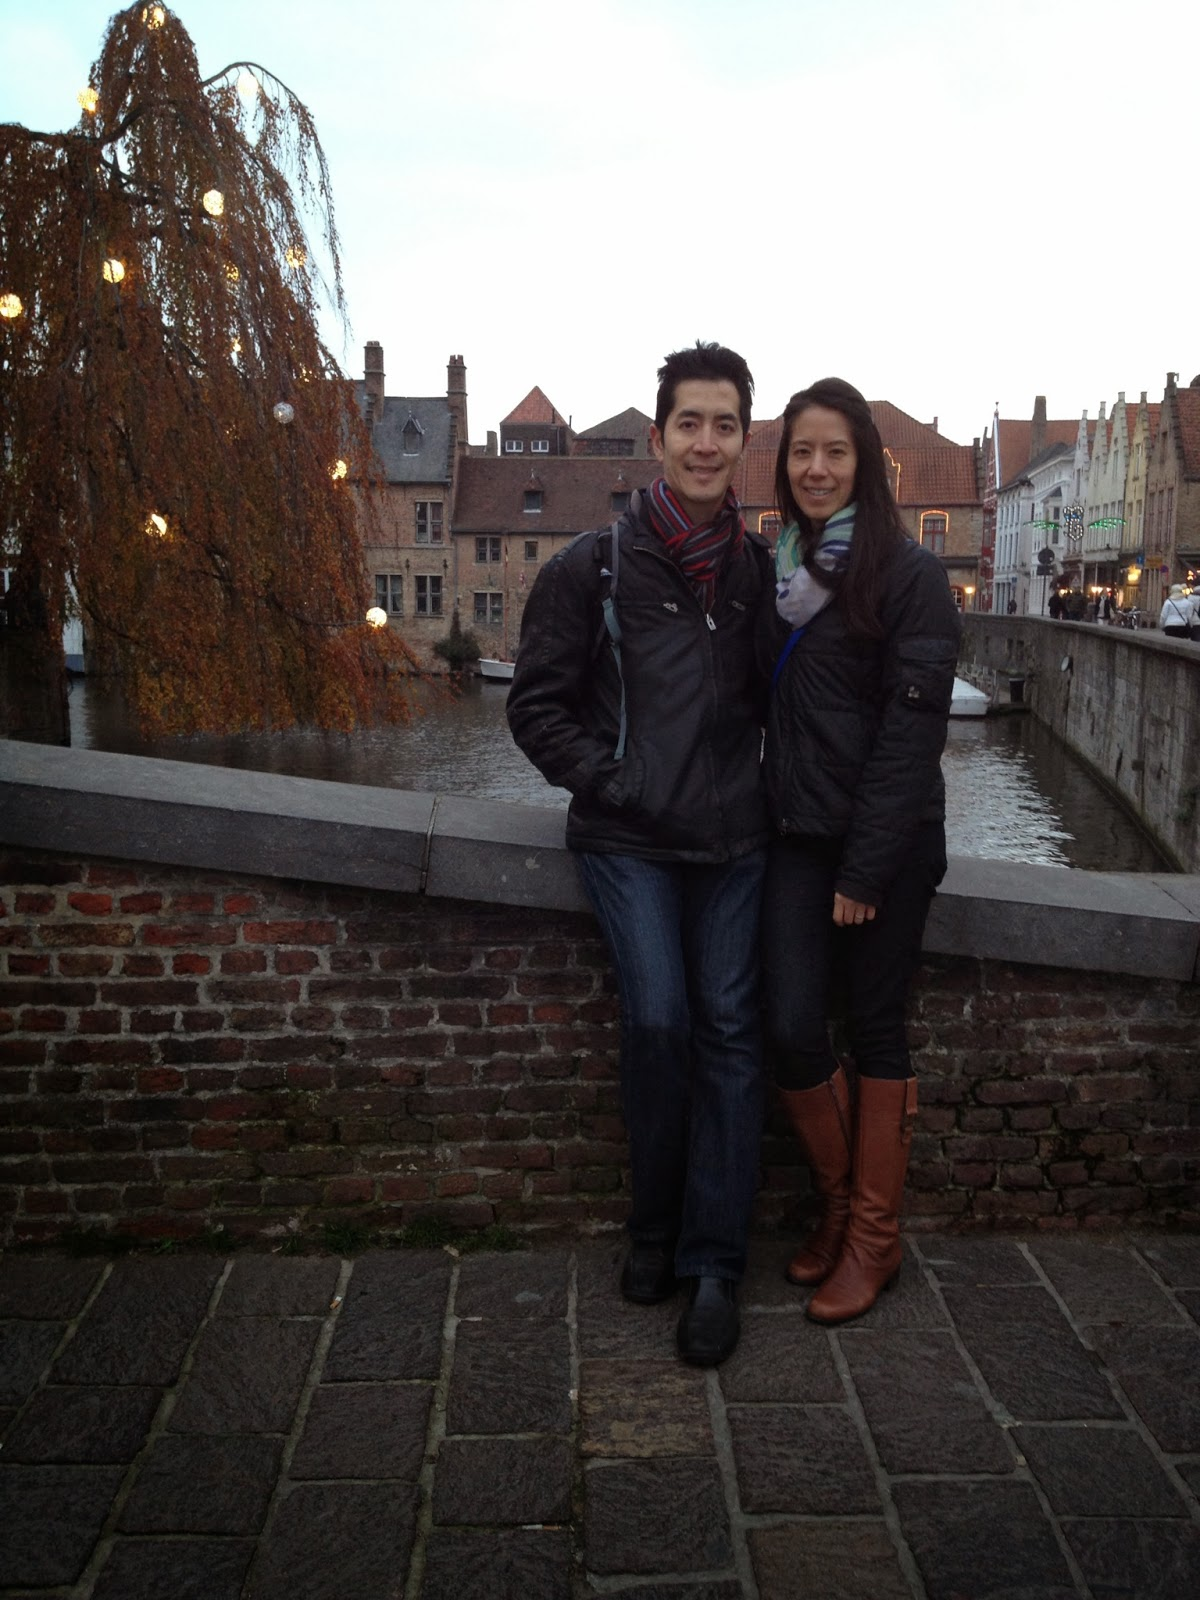 Bruges - One of the bridges of Bruges